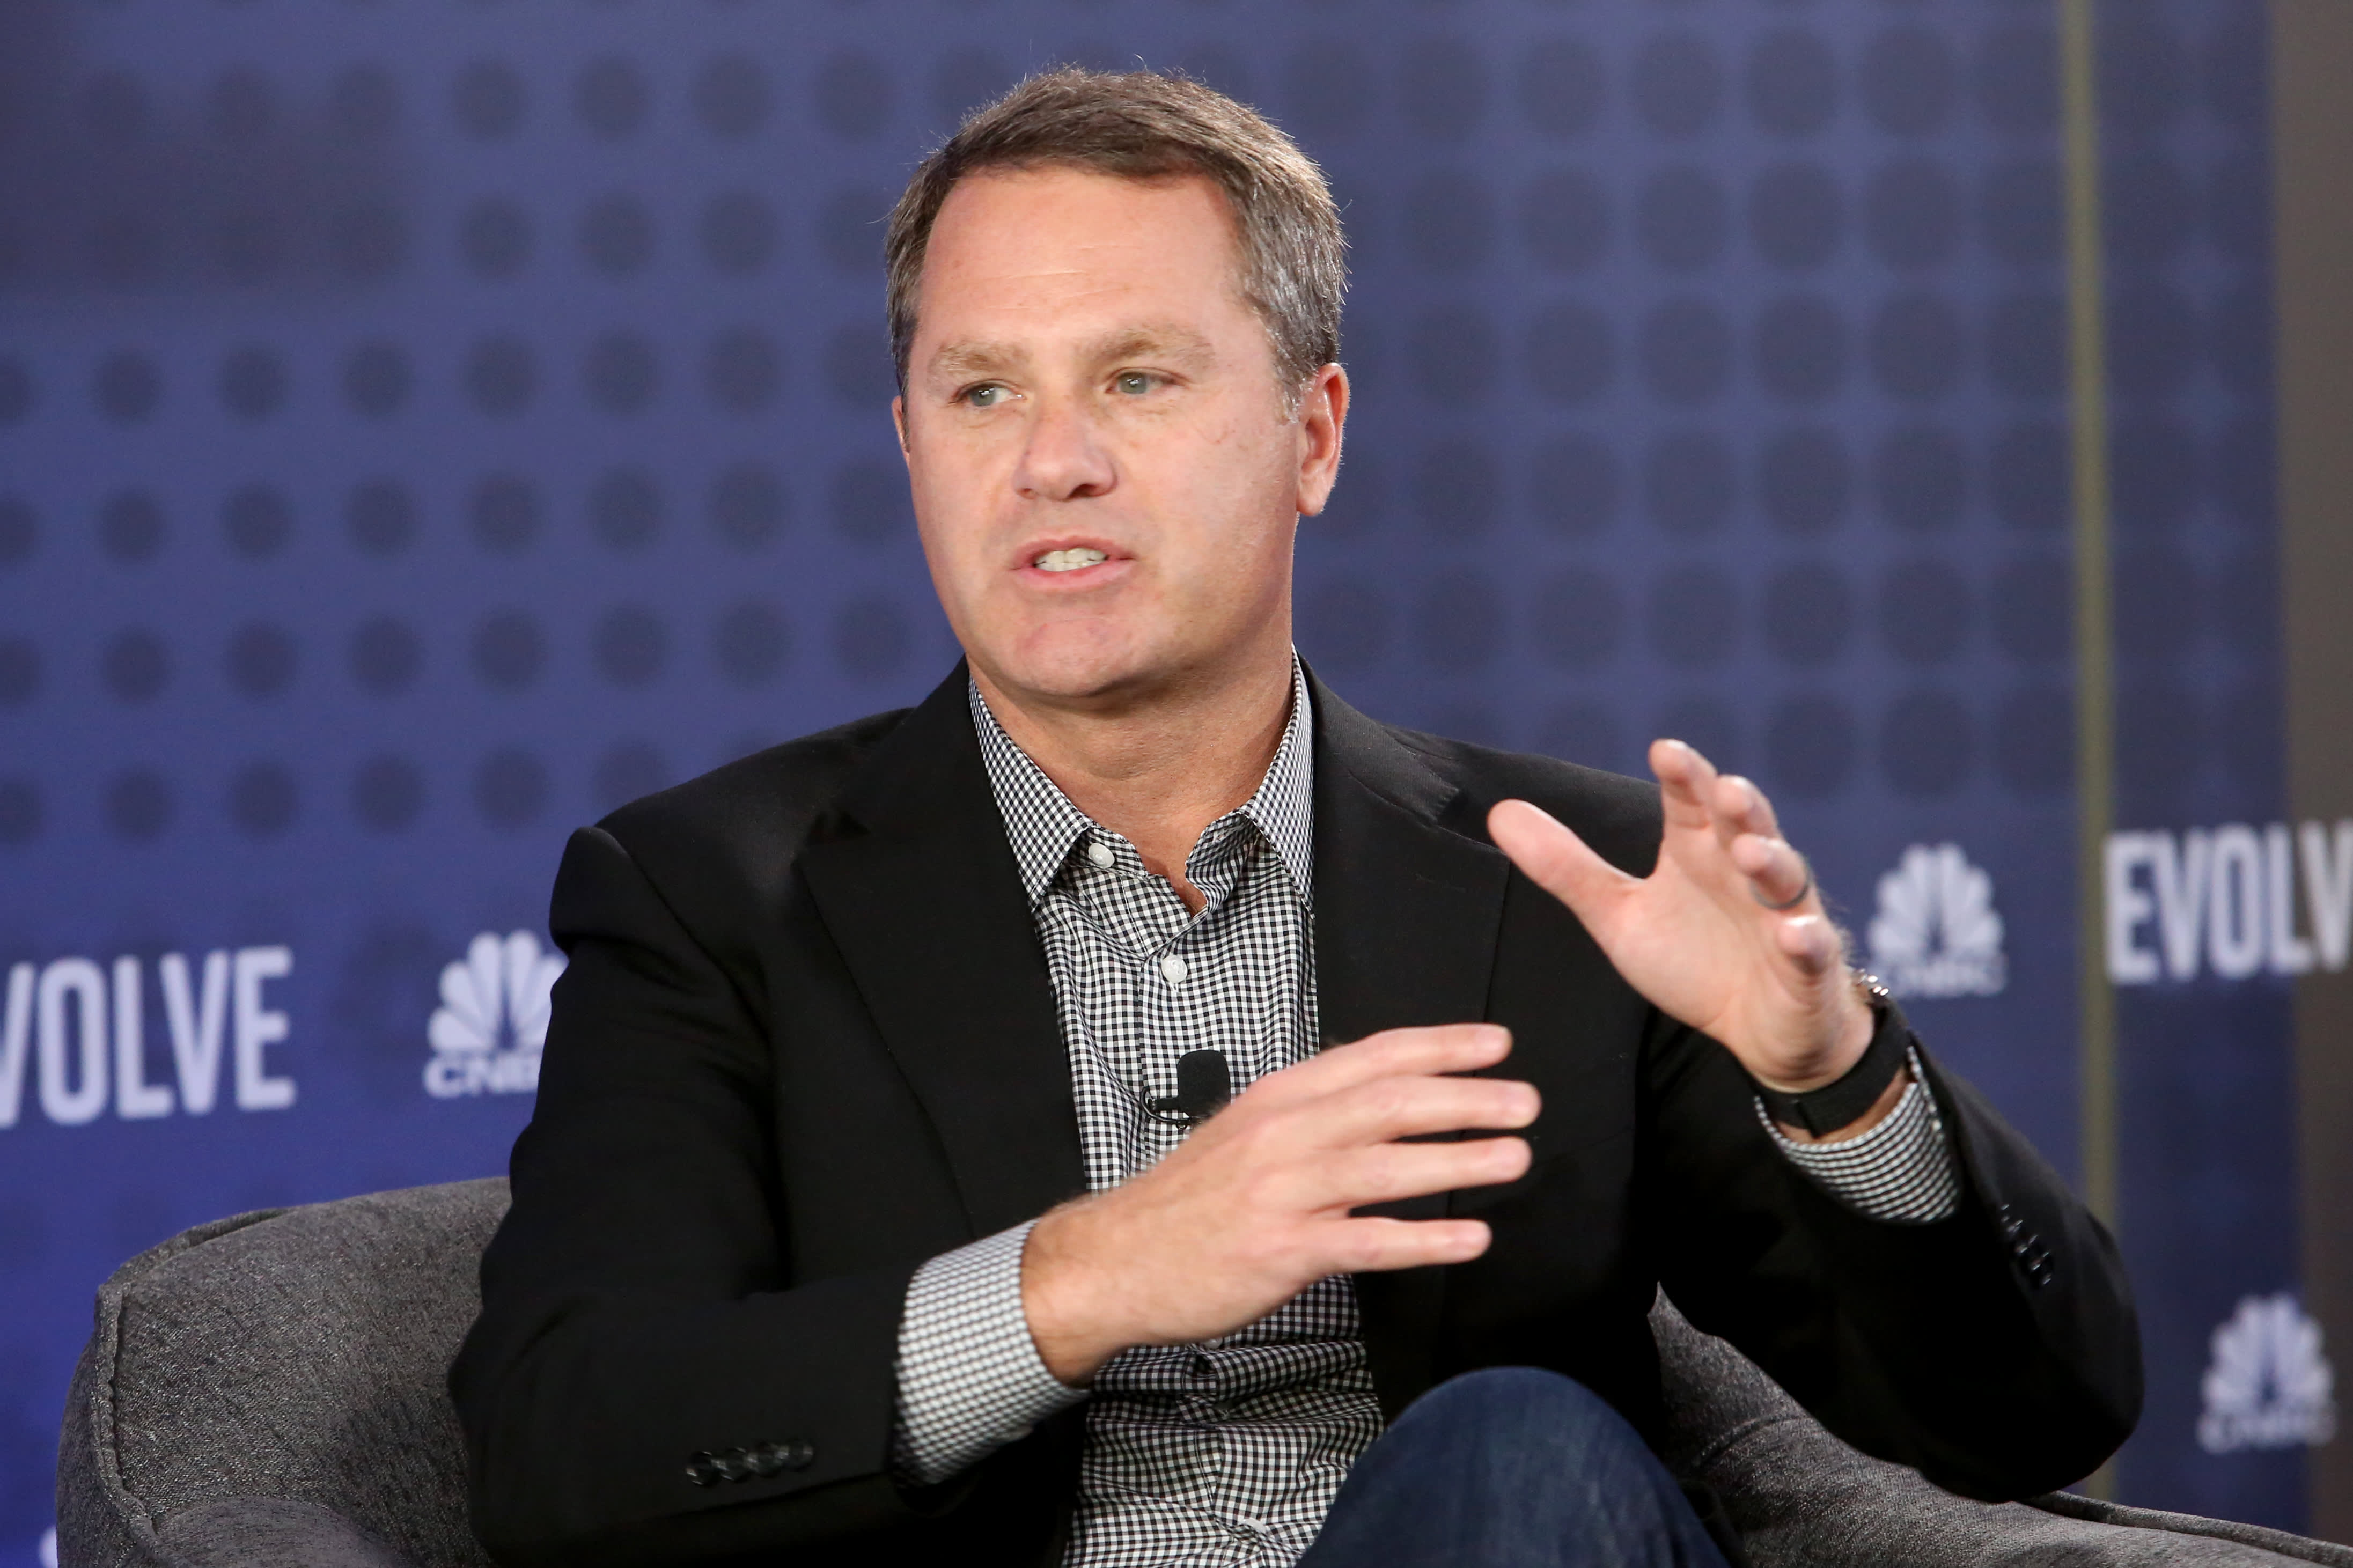 Walmart CEO Doug McMillon said CEOs must advance racial equality